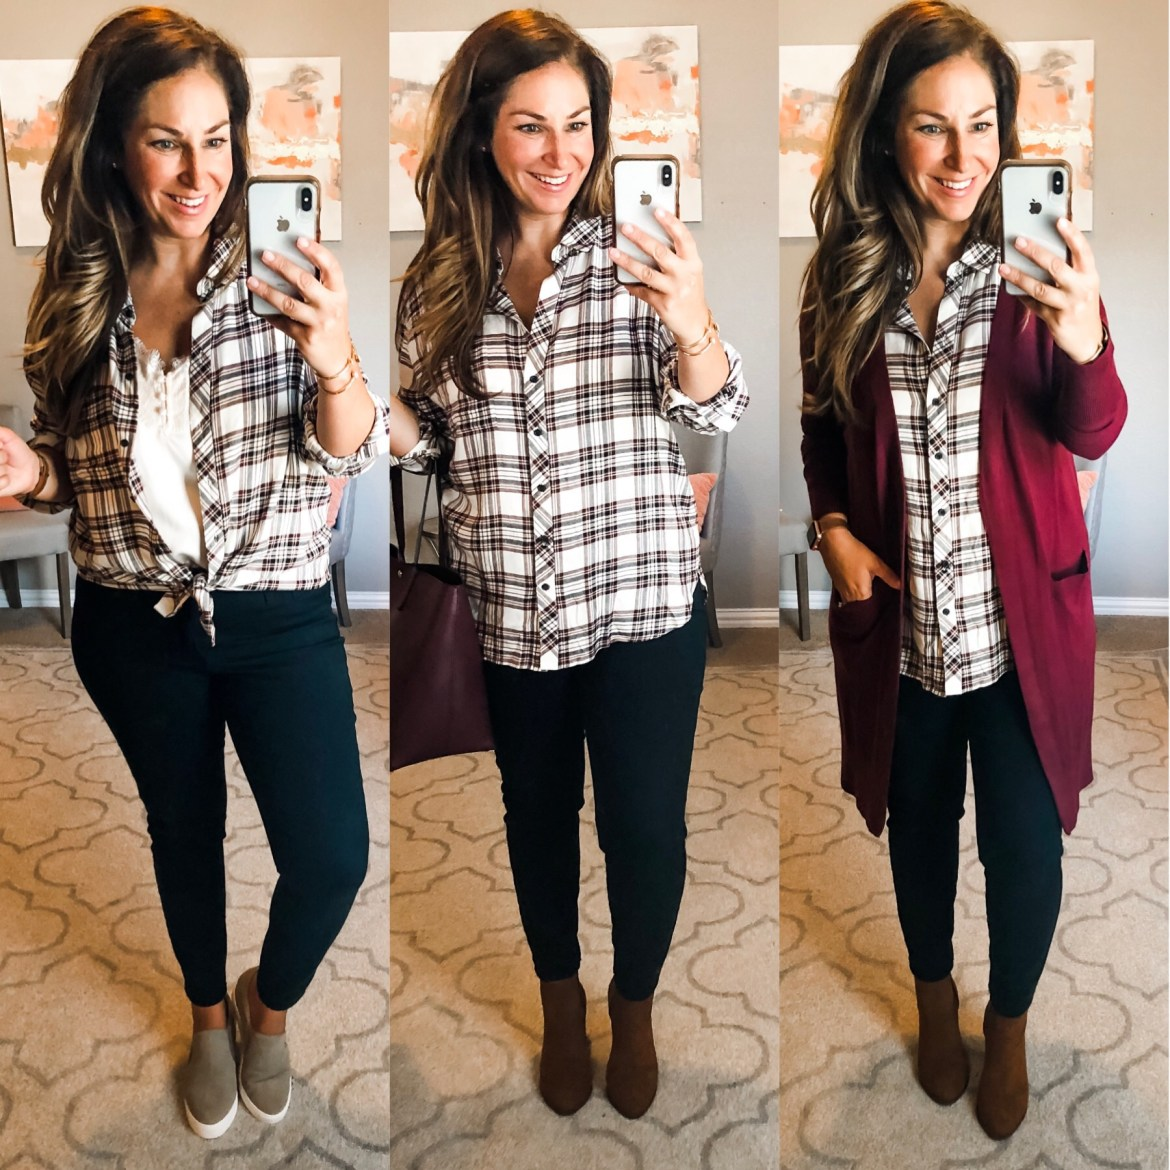 Plaid shirts are a staple for fall